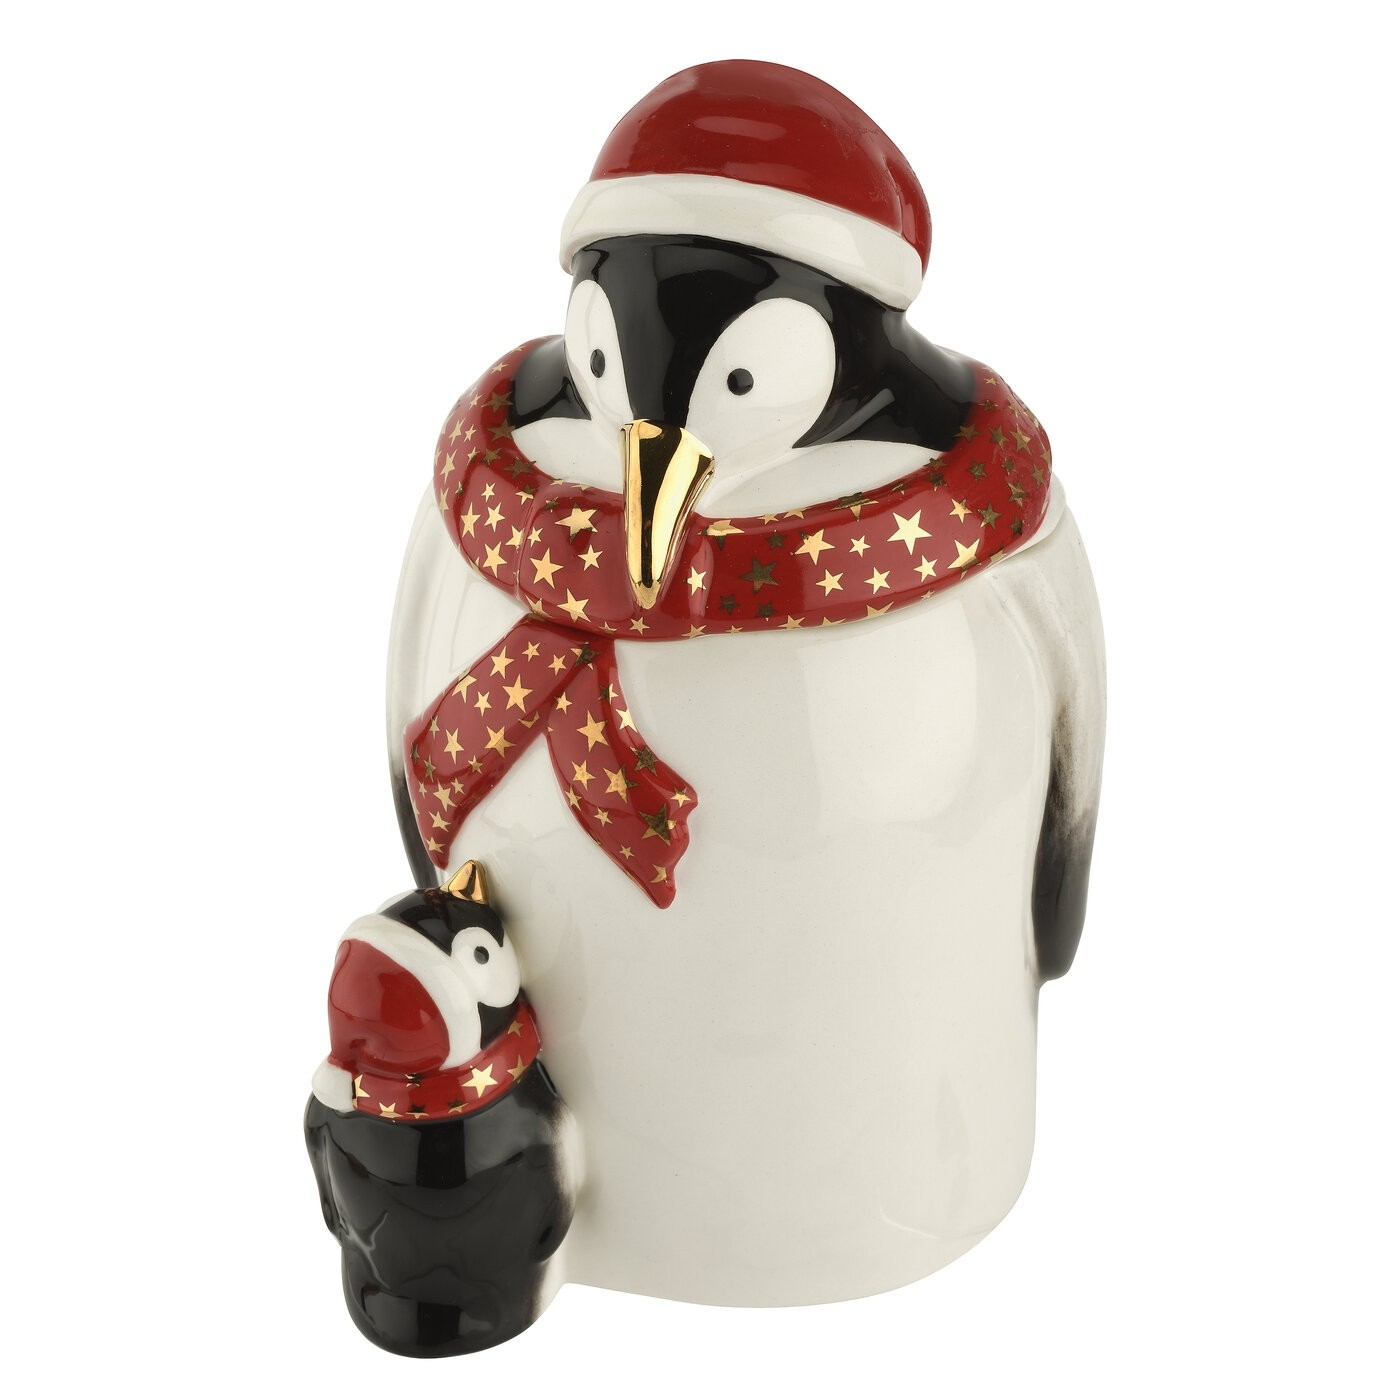 Spode Christmas Tree Candle Holder: Spode Christmas Tree Figural Collection Penguin Candy Jar